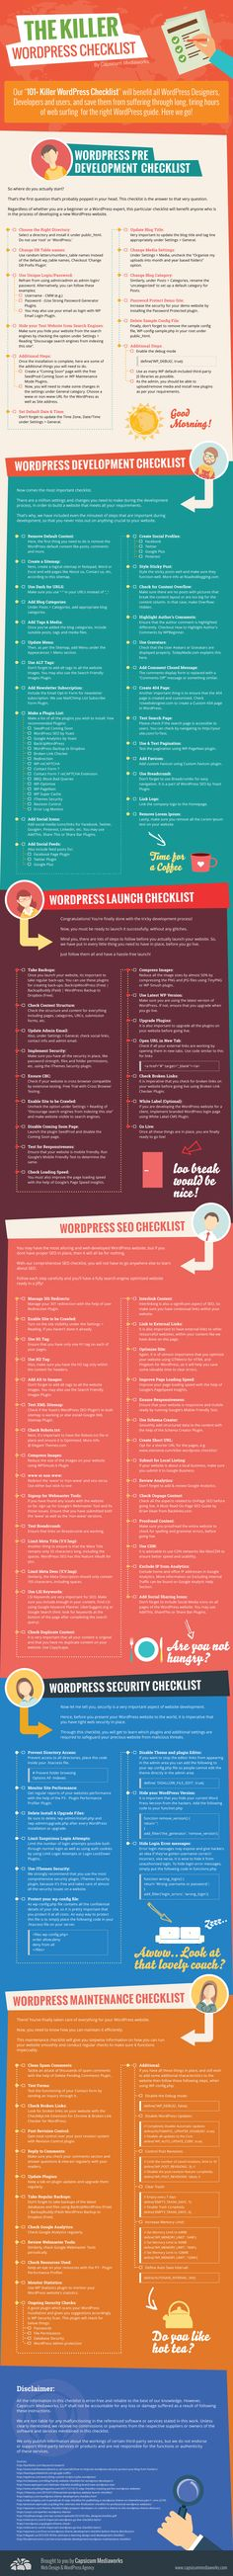 Have you ever been overwhelmed with all the bits and pieces that are part of setting up and maintaining your WordPress site as well as how to keep track of it all? This handy infographic covers all aspects of WordPress from the development process to ongoing maintenance and security. This is a super time saver…